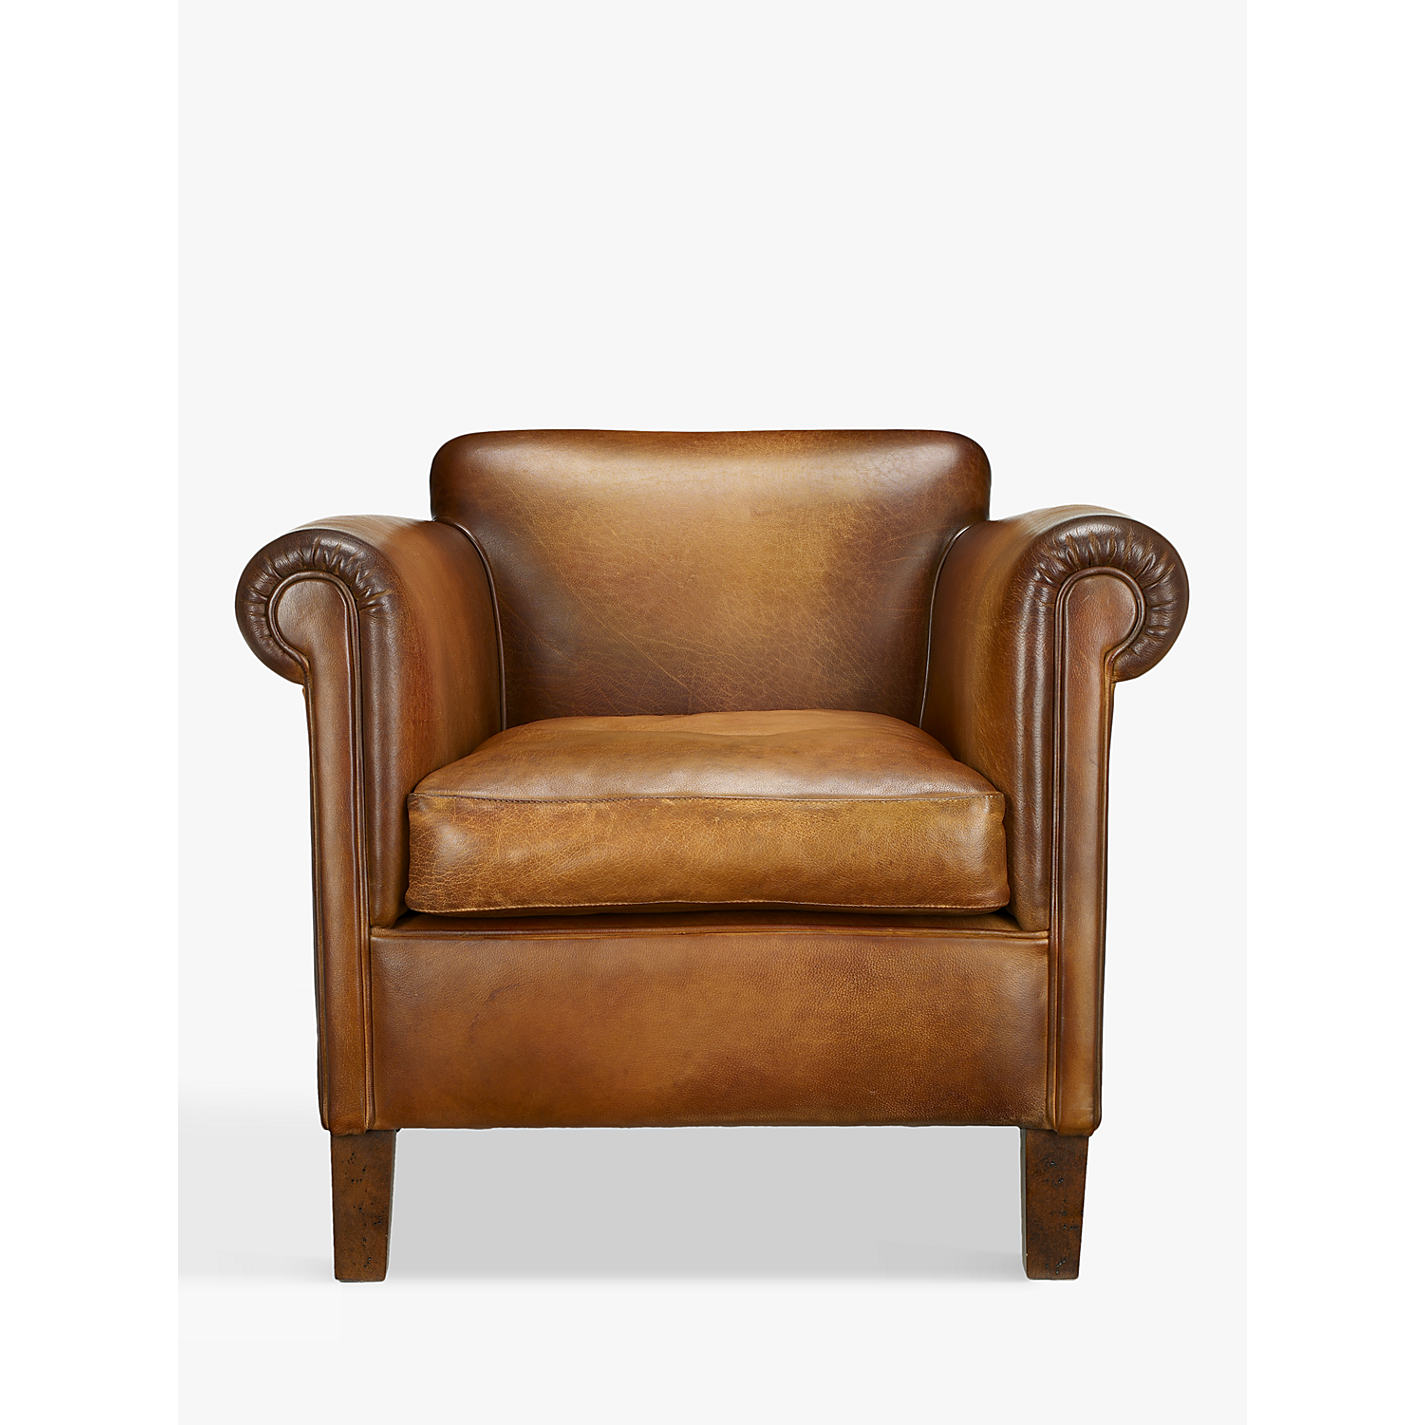 Buy John Lewis Camford Leather Armchair Buffalo Antique